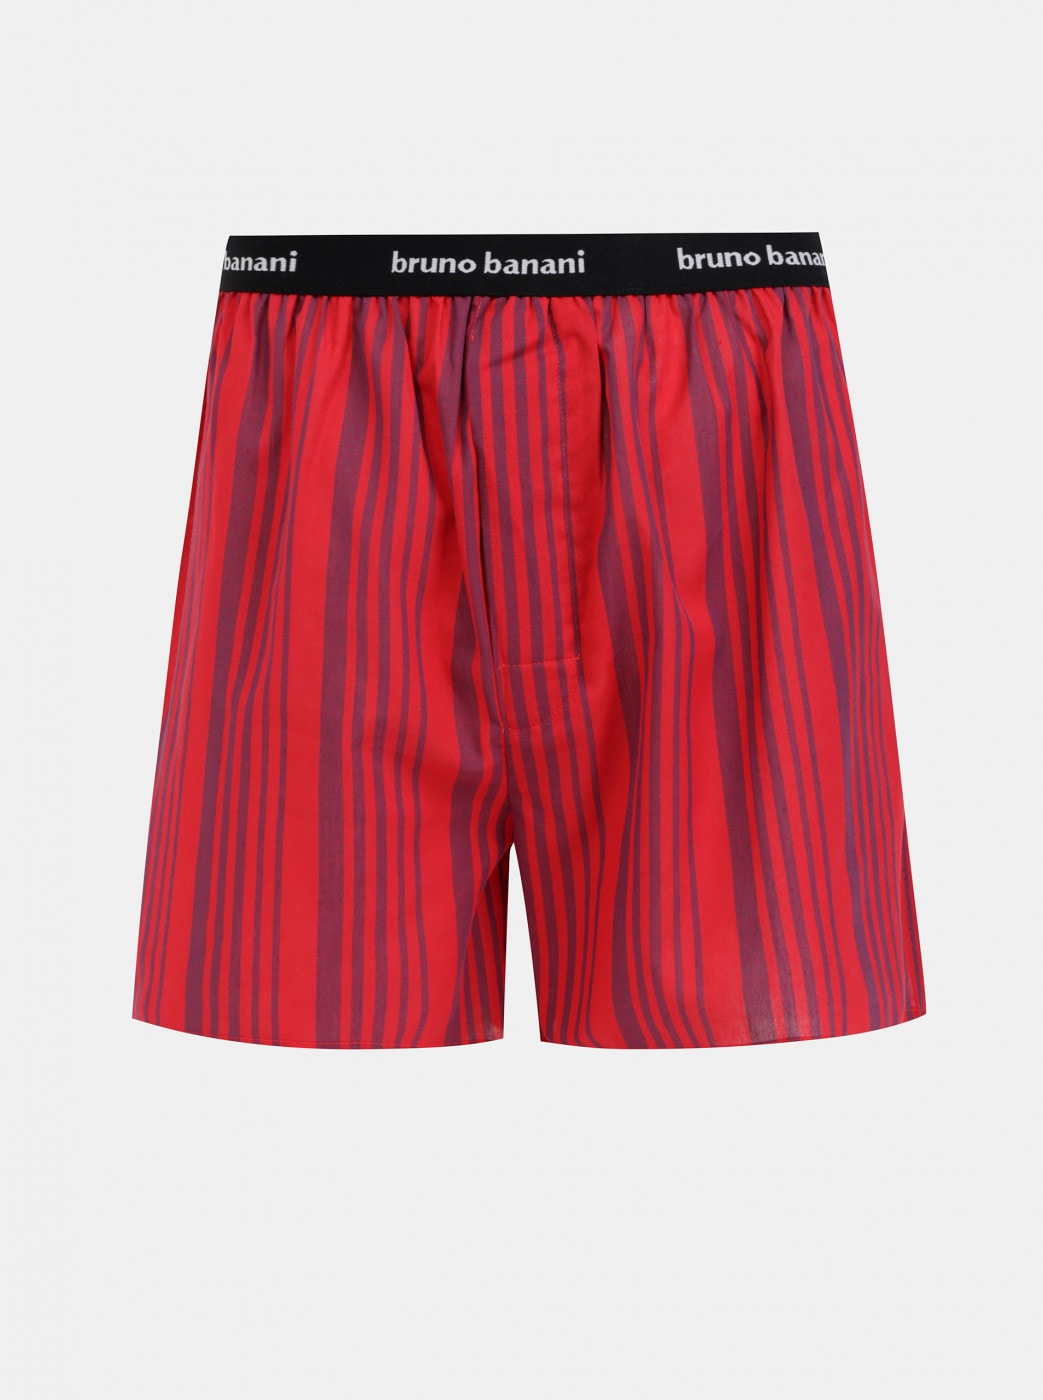 Bruno Banani's Red Striped Shorts